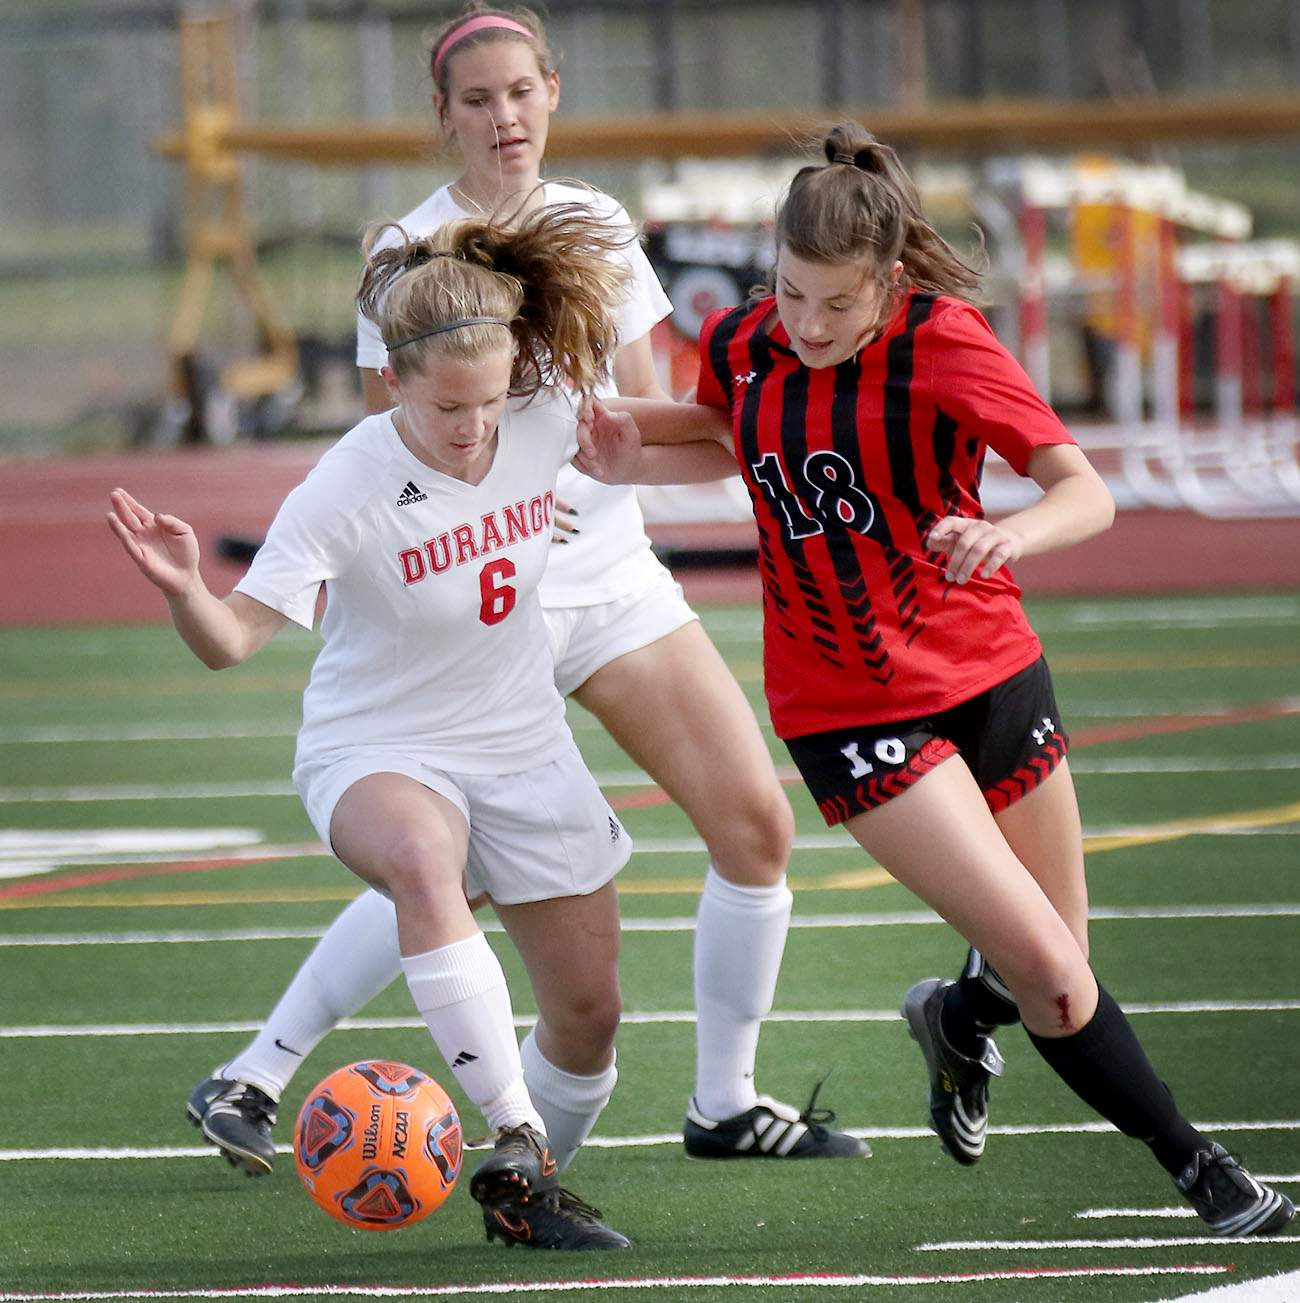 durango girls soccer blows by montrose on senior day